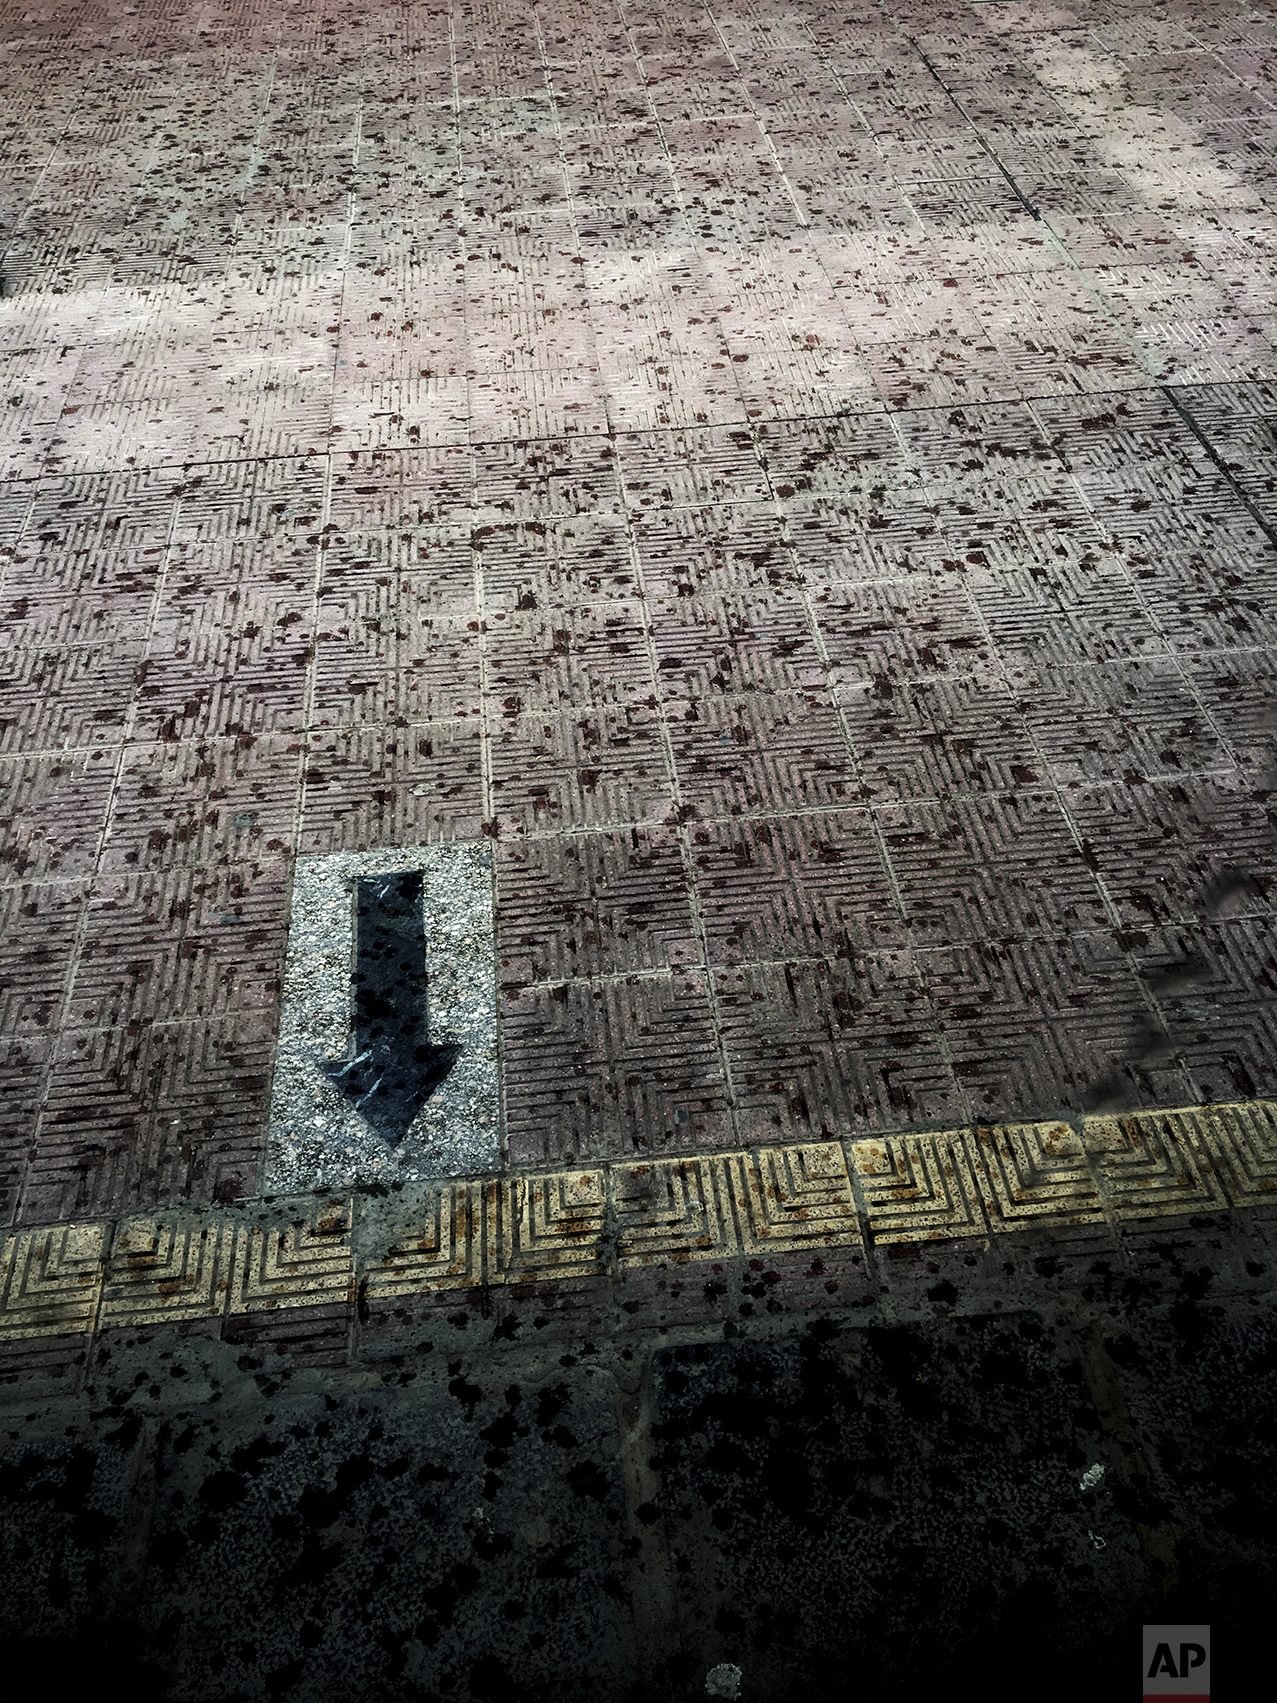 This May 18, 2017 photo, shows rain drops on the platform of a metro station, in Cairo, Egypt. (AP Photo/Nariman El-Mofty)